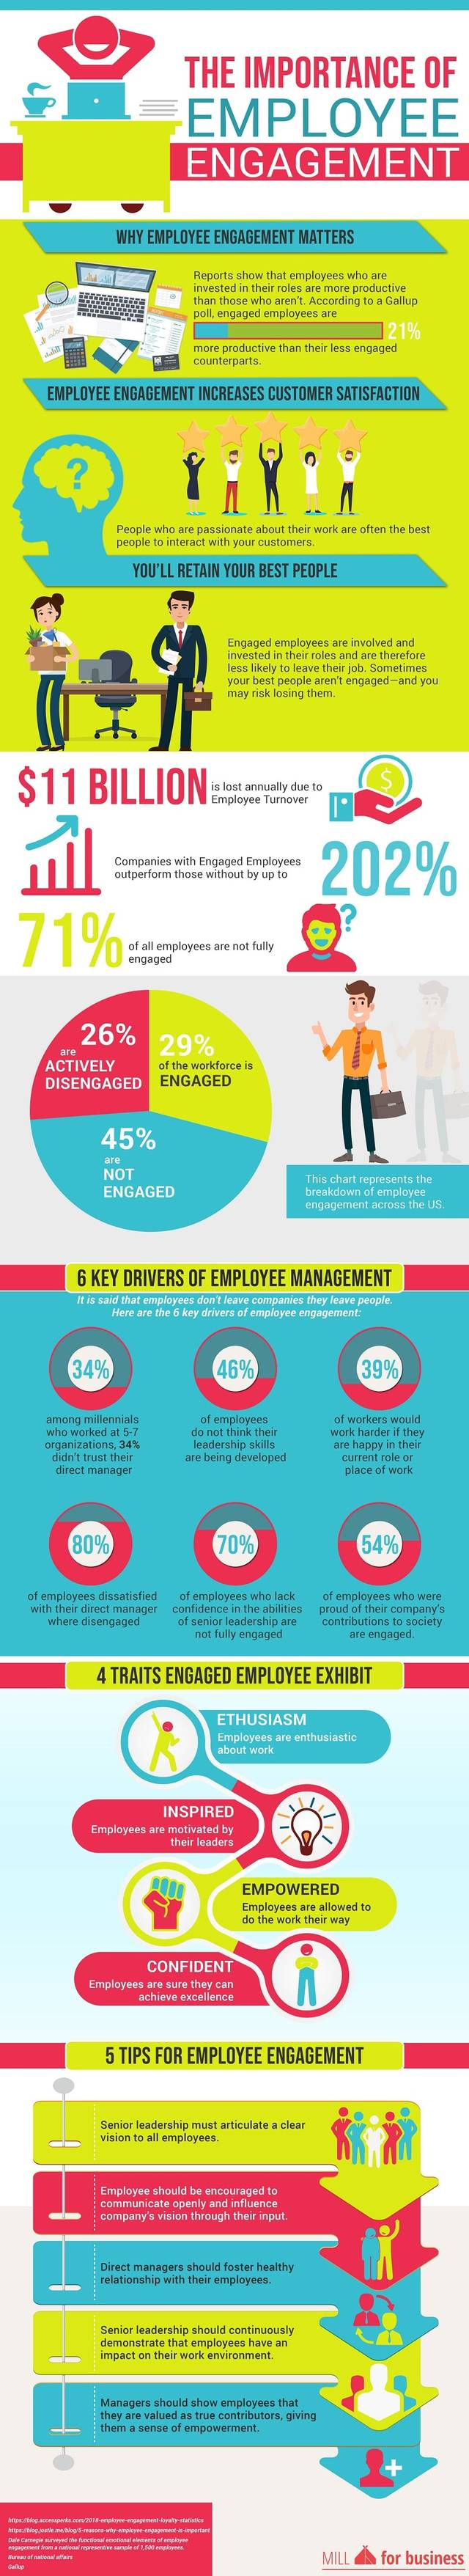 Why is employee engagement important